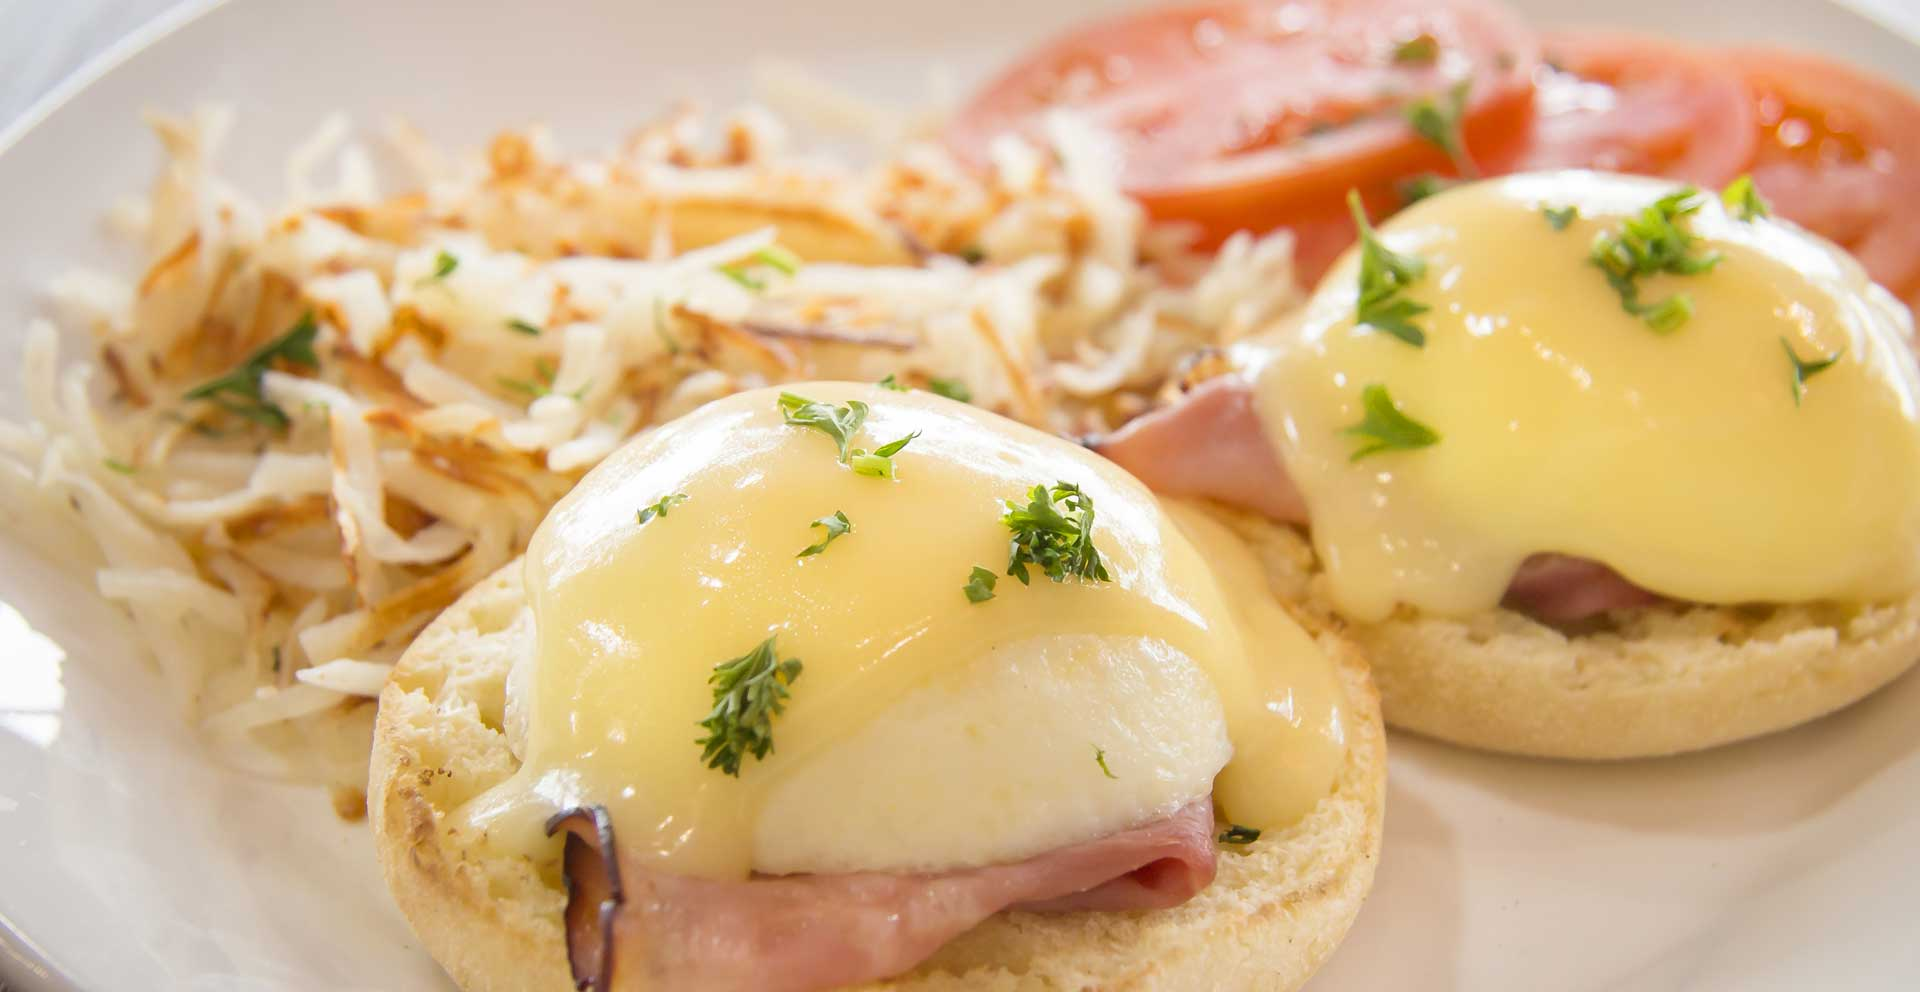 All of our delicious Bennies are served with breakfast meats raised without any antibiotics or added hormones.